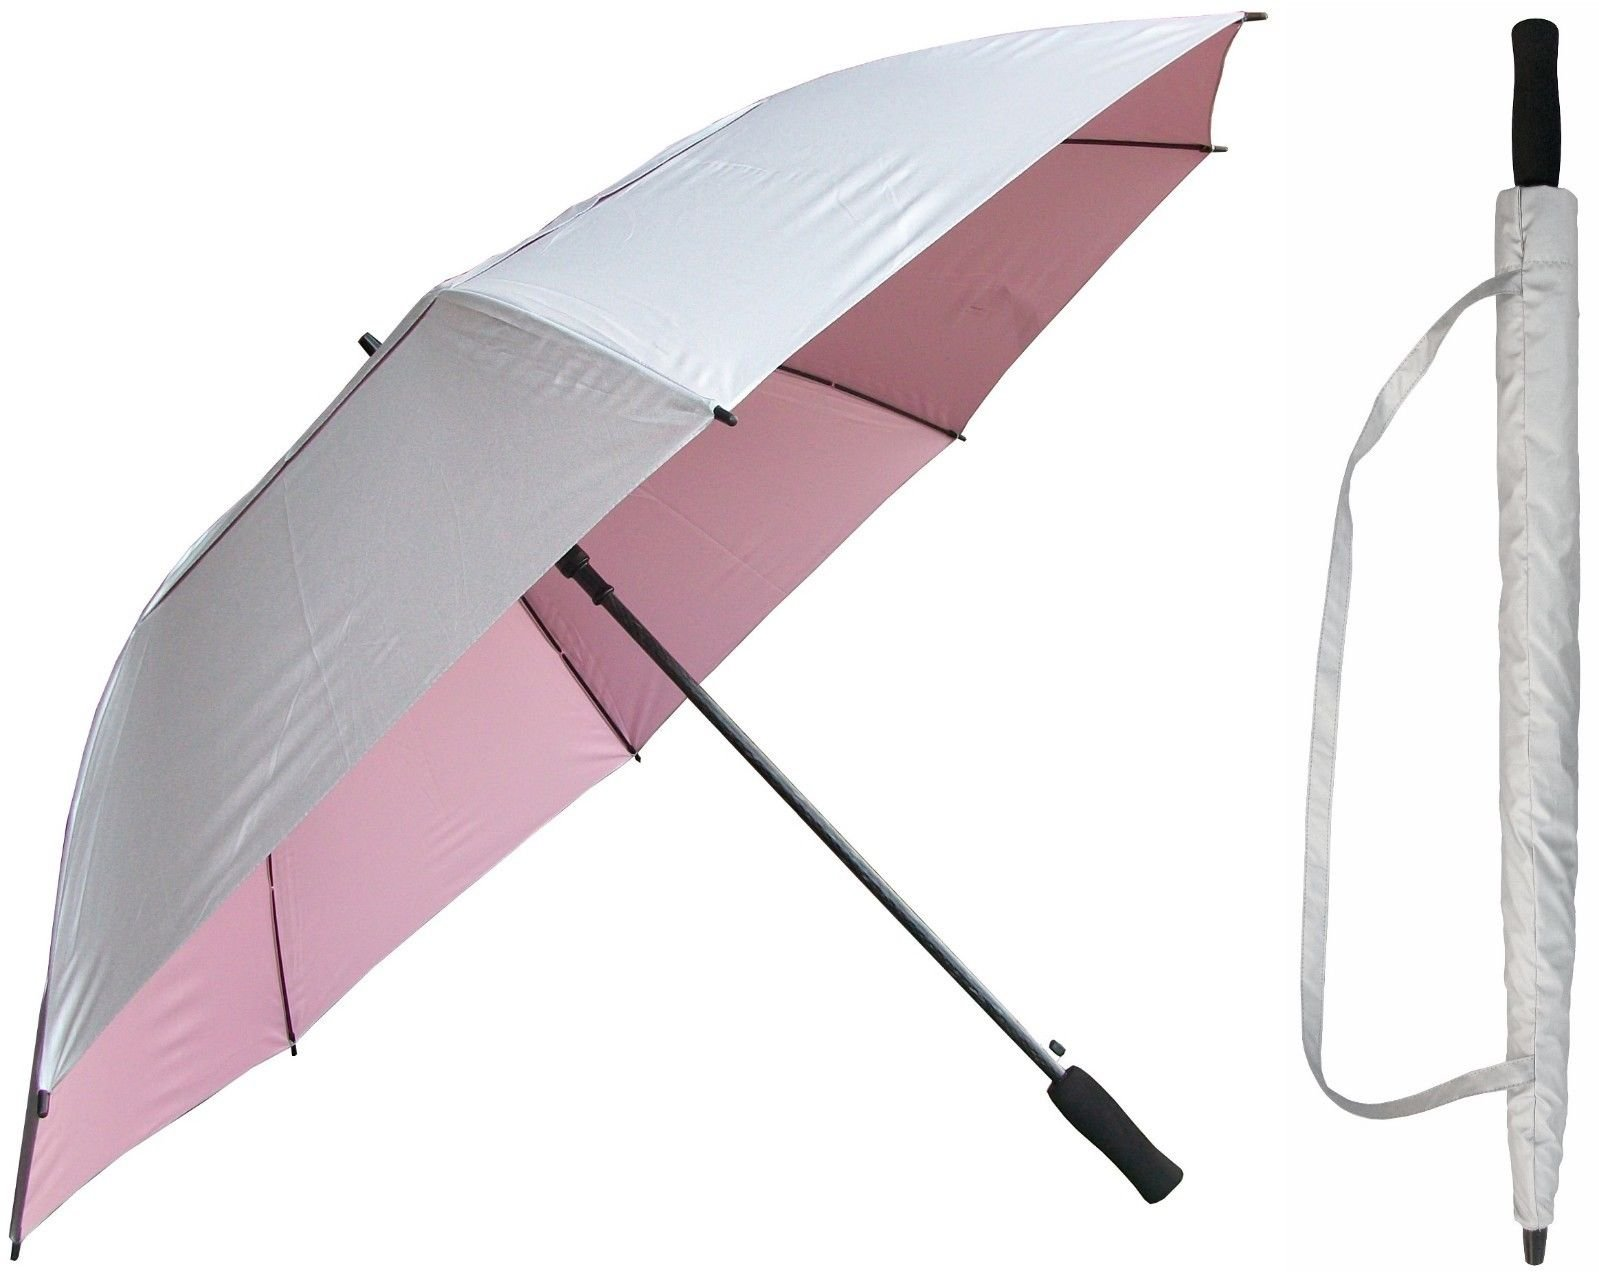 60 inch Silver & Light Pink Golf Umbrella - Vented Double-Canopy - Auto Open Button - Fiberglass Shaft and Frame - Windproof Stick Umbrellas